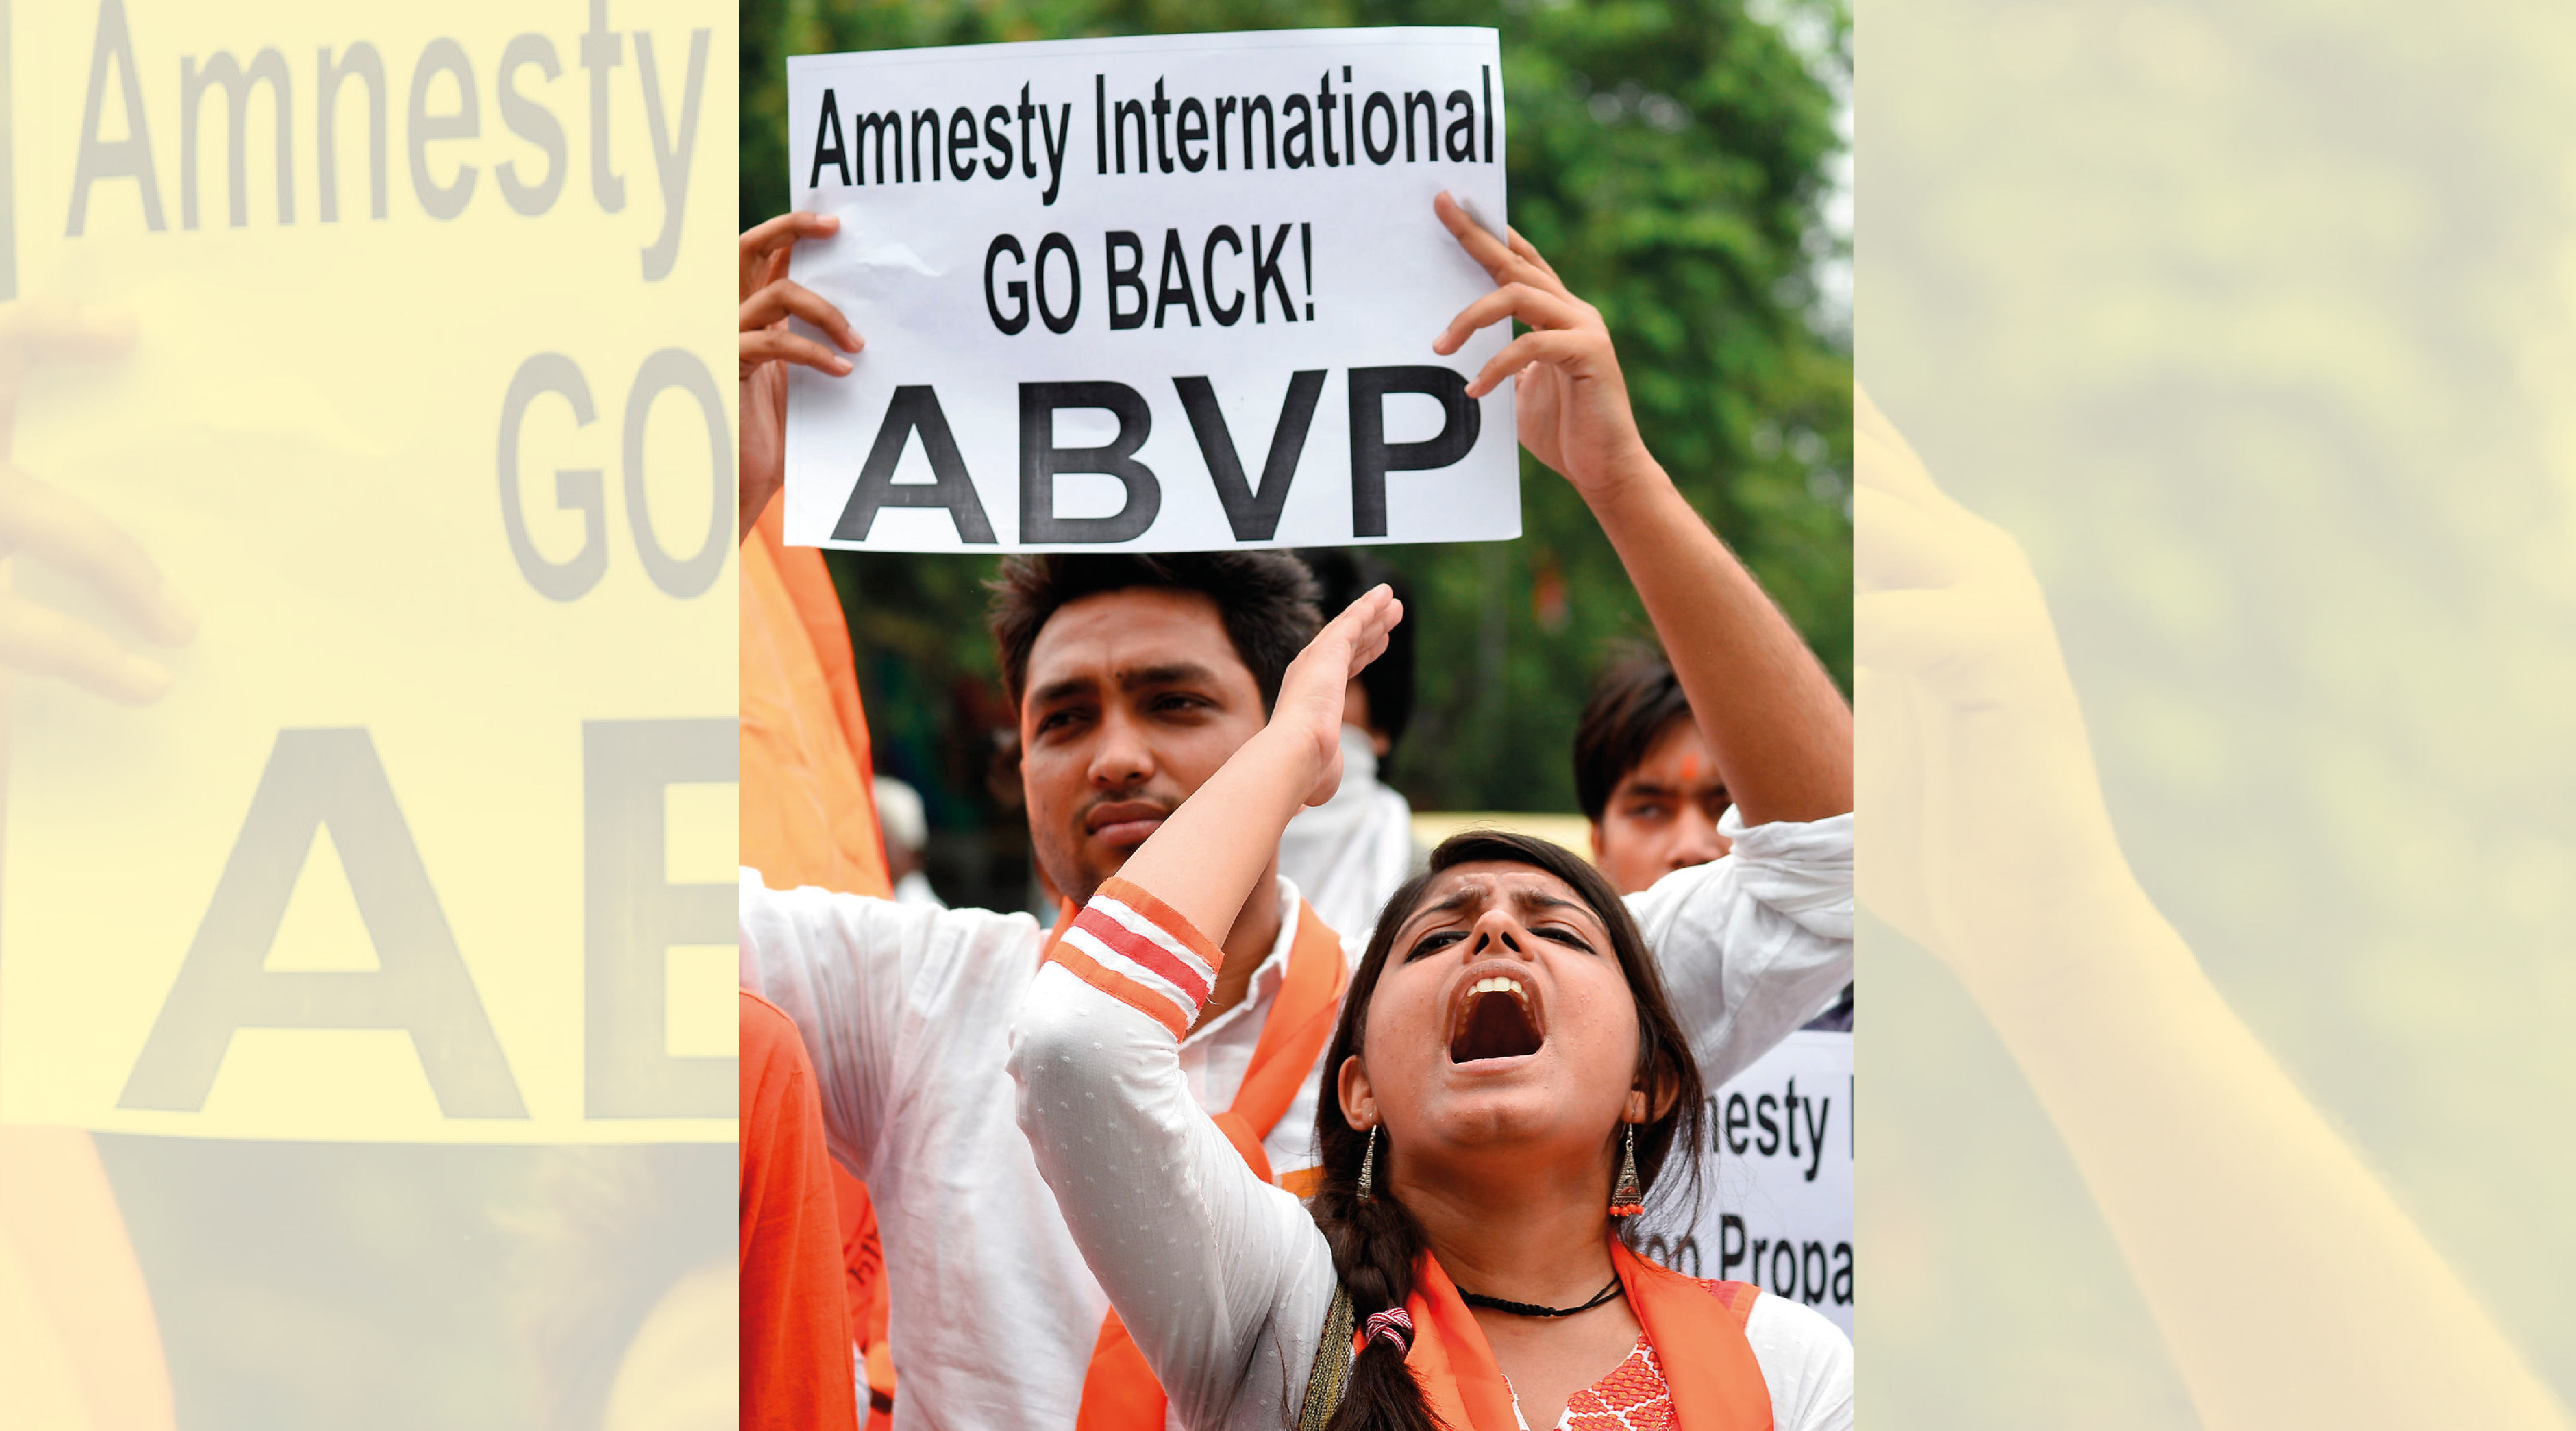 Amnesty under angreb_Indien_1080x600.png